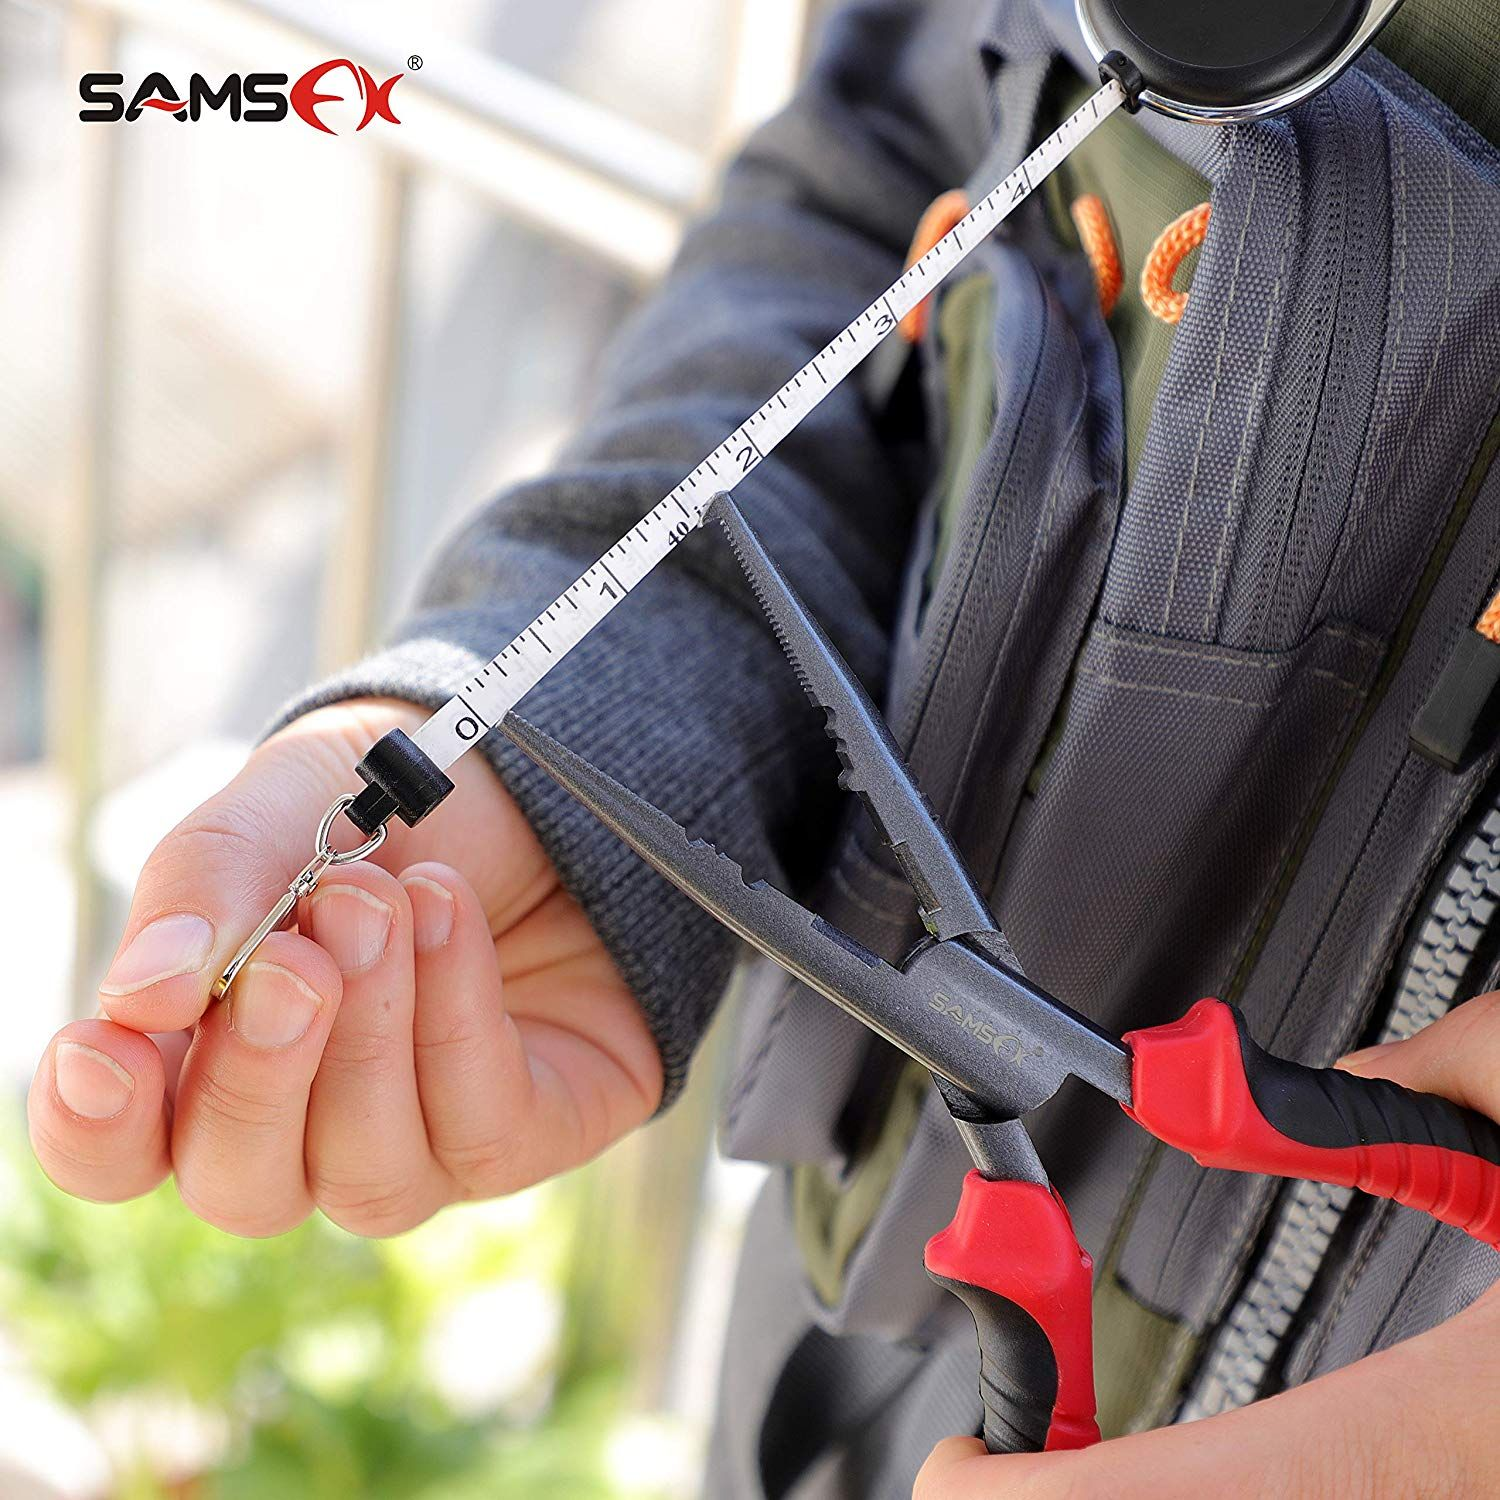 Amazon Com Samsfx Fishing Quick Knot Tool With Fly Fishing Carabiner Tape Measure Zinger Retractor Black Knot To Fly Fishing Knots Fly Fishing Fishing Knots